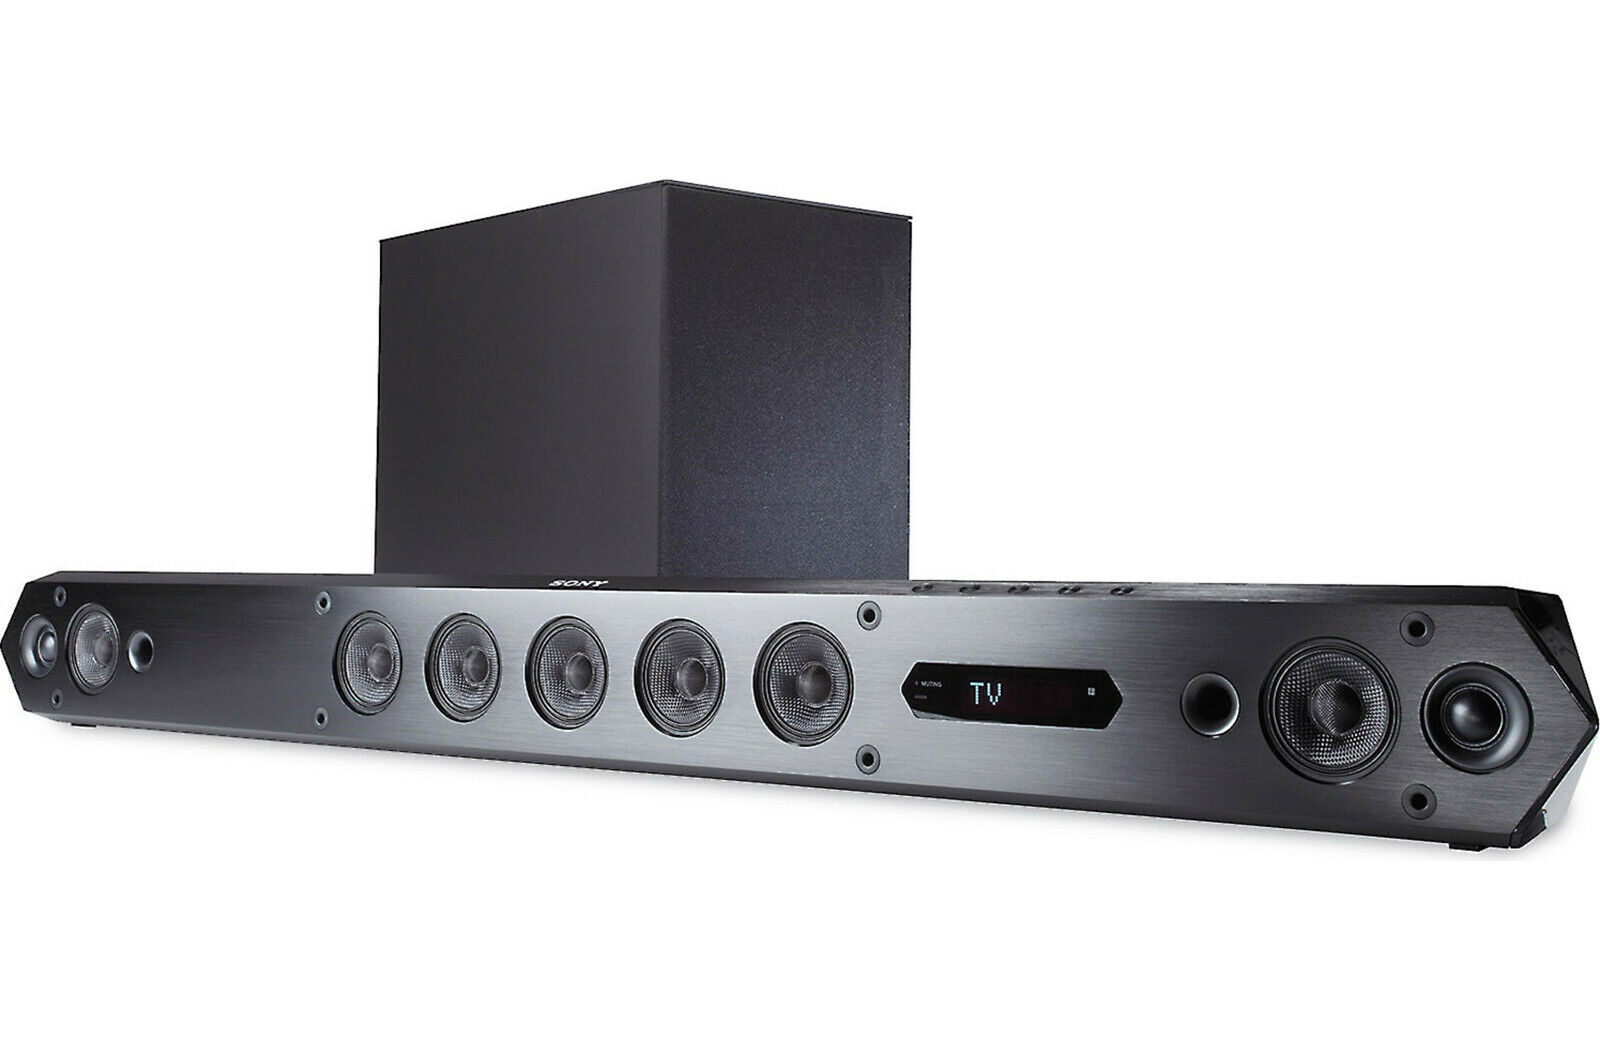 Sony HT-ST7 Powered home theater sound bar with 7.1-channel surround sound-$1299. Buy it now for 699.99